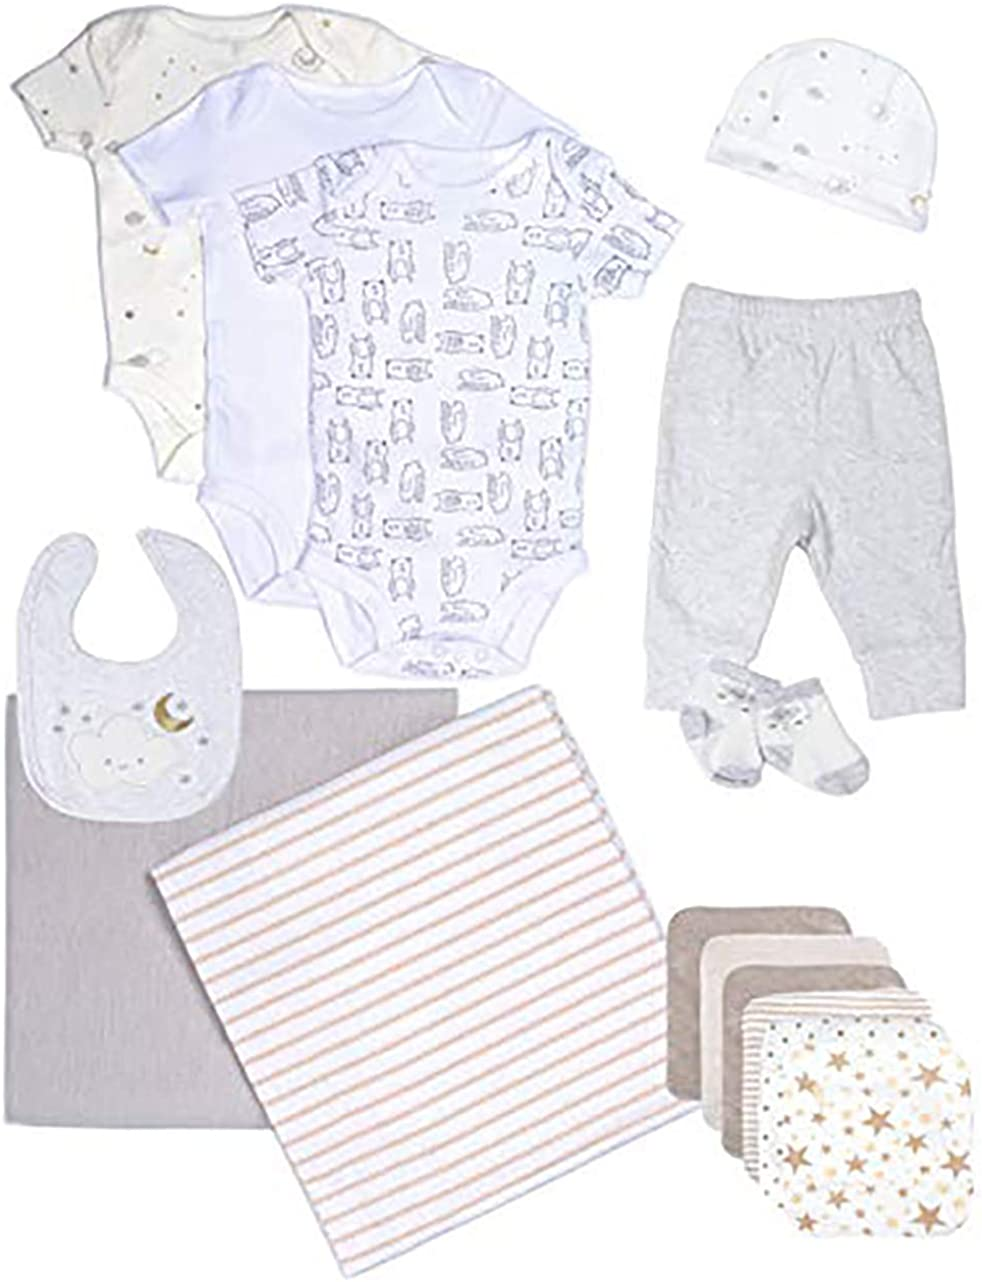 Baby Essentials for Newborn, 15 Piece Layette Gift Set for Boys and Girls